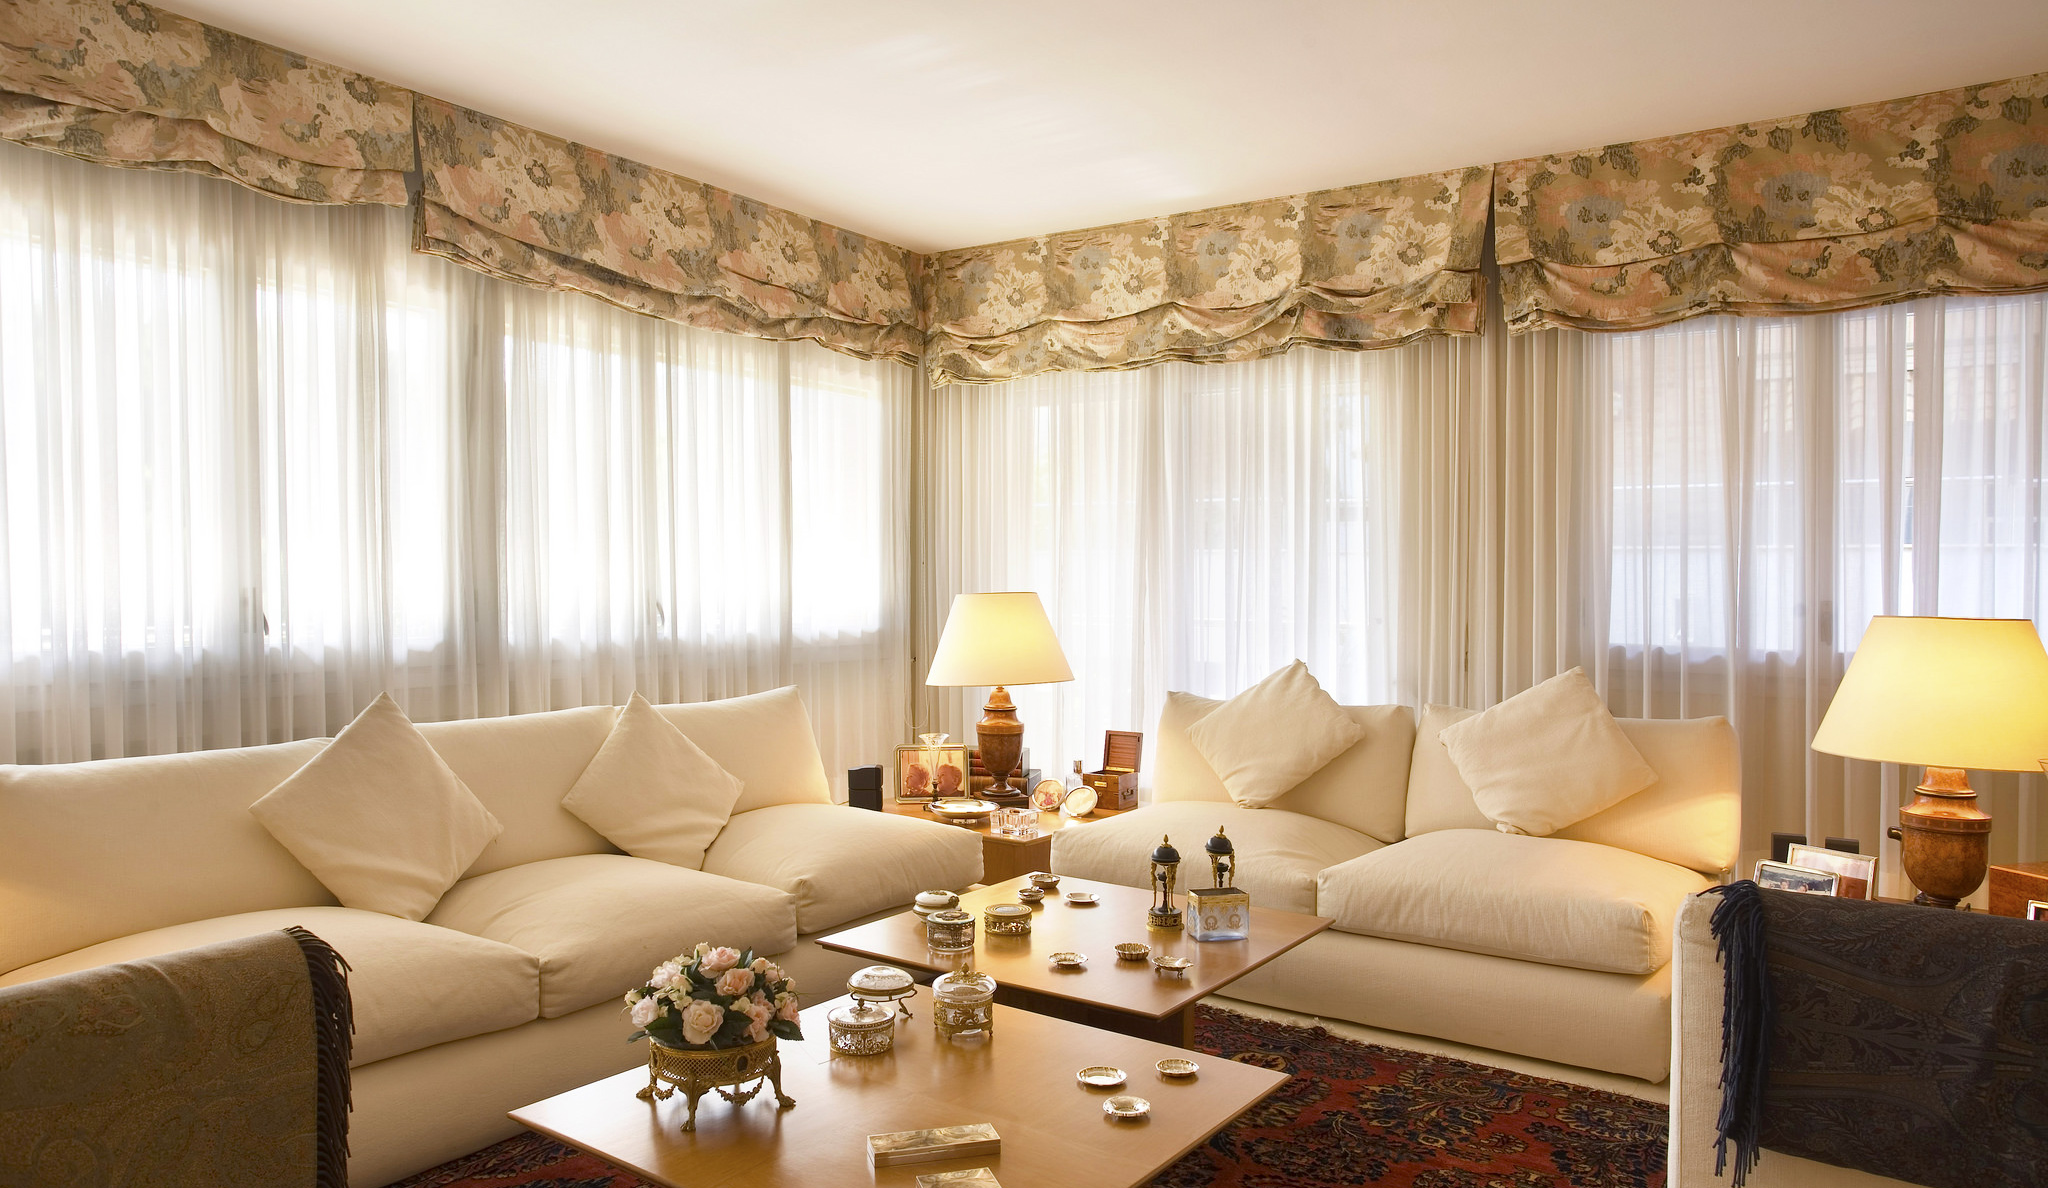 Tips for Choosing Living Room Curtain | Roy Home Design on Living Room Drapes Ideas  id=52793